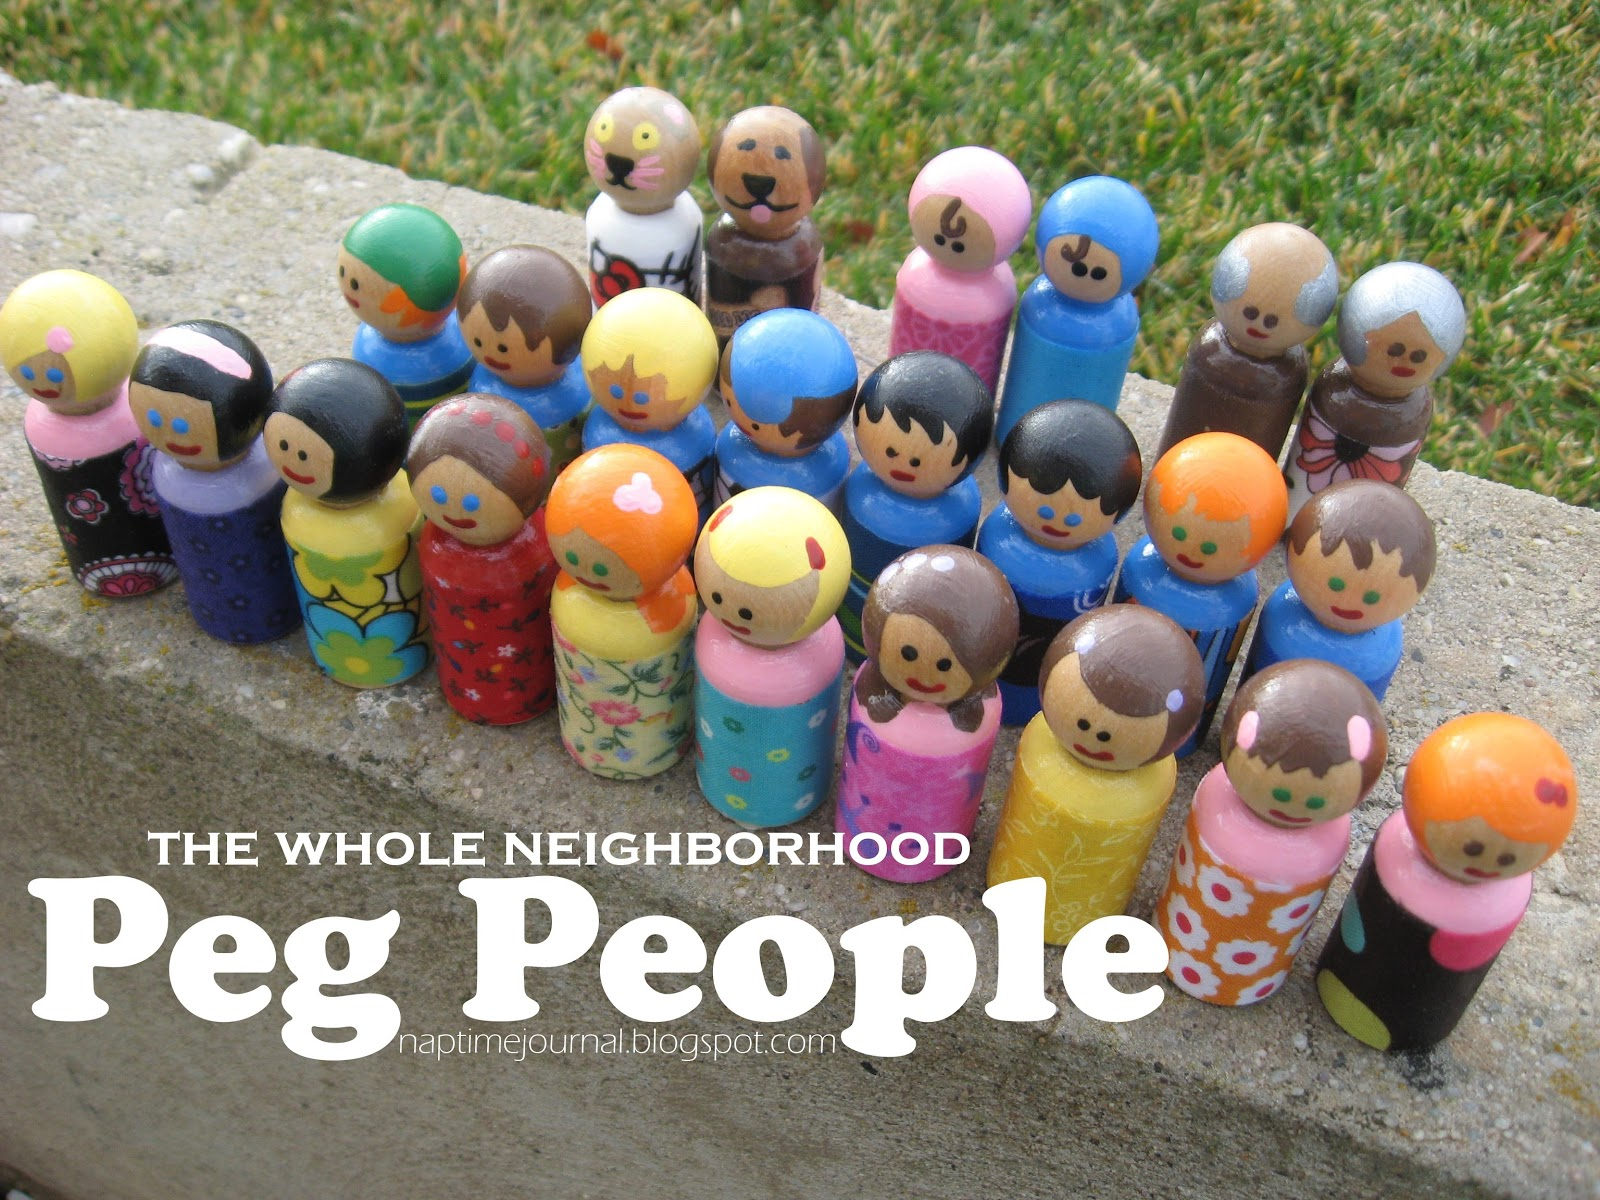 Nap Time Journal: A Neighborhood of PEG PEOPLE: A Homemade Christmas